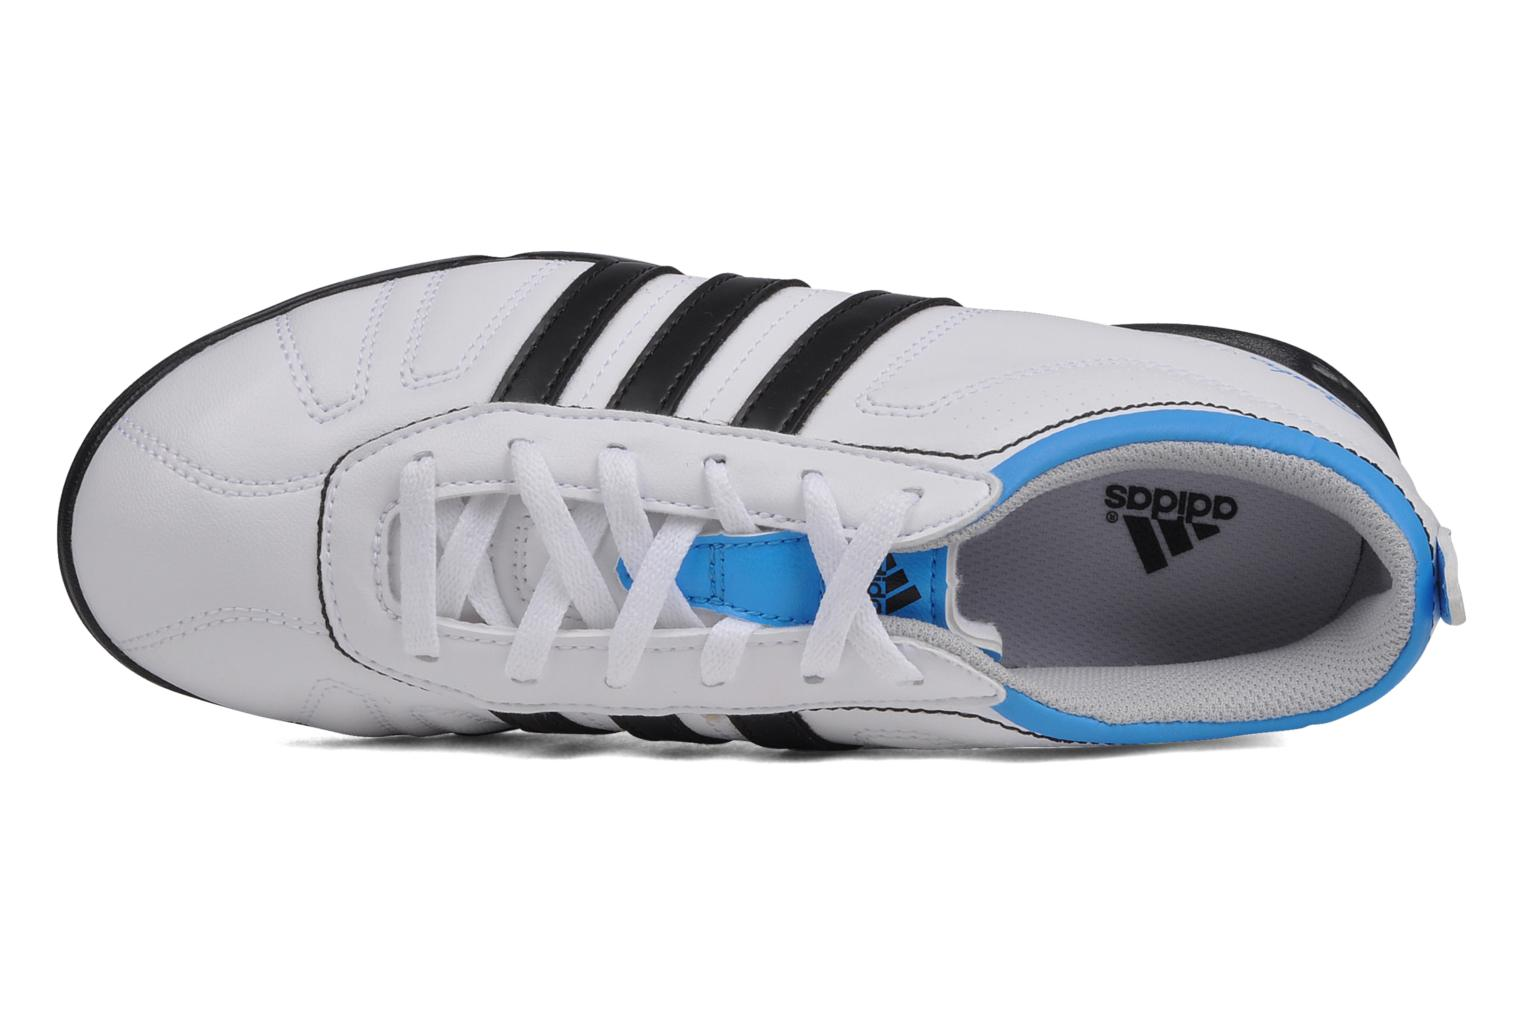 Adiquestra iv trx tf j White / black 1 / fresh splash s11